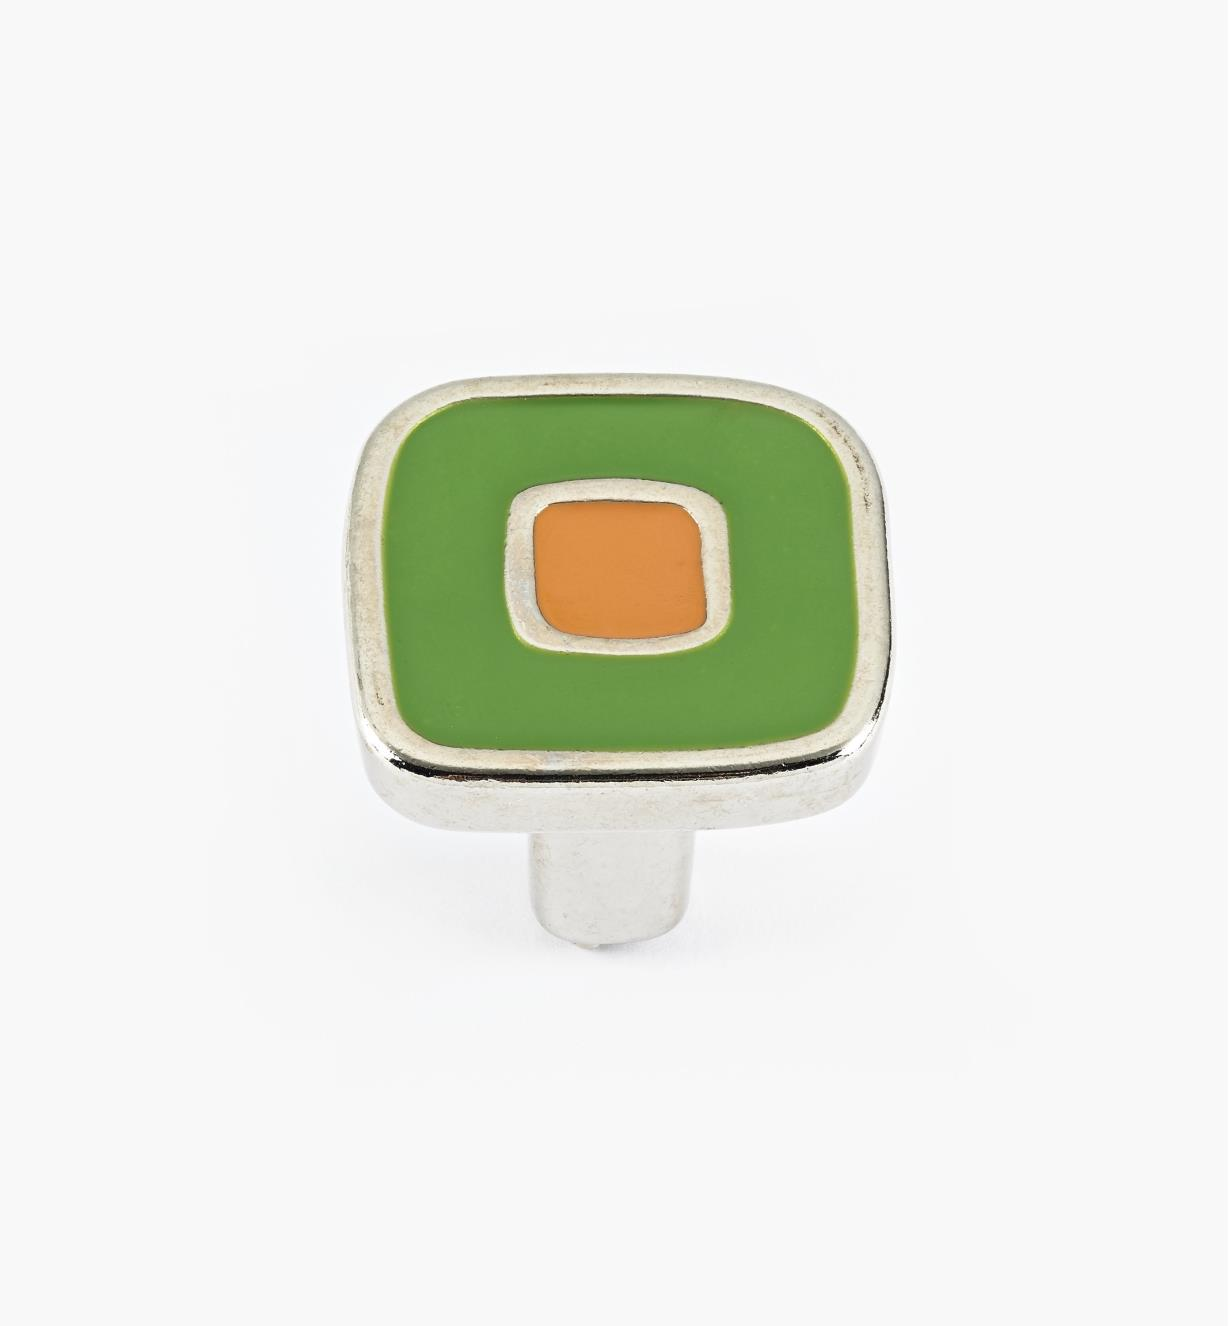 01X4340 - Enamel Infill 30mm Small Green/Orange Knob